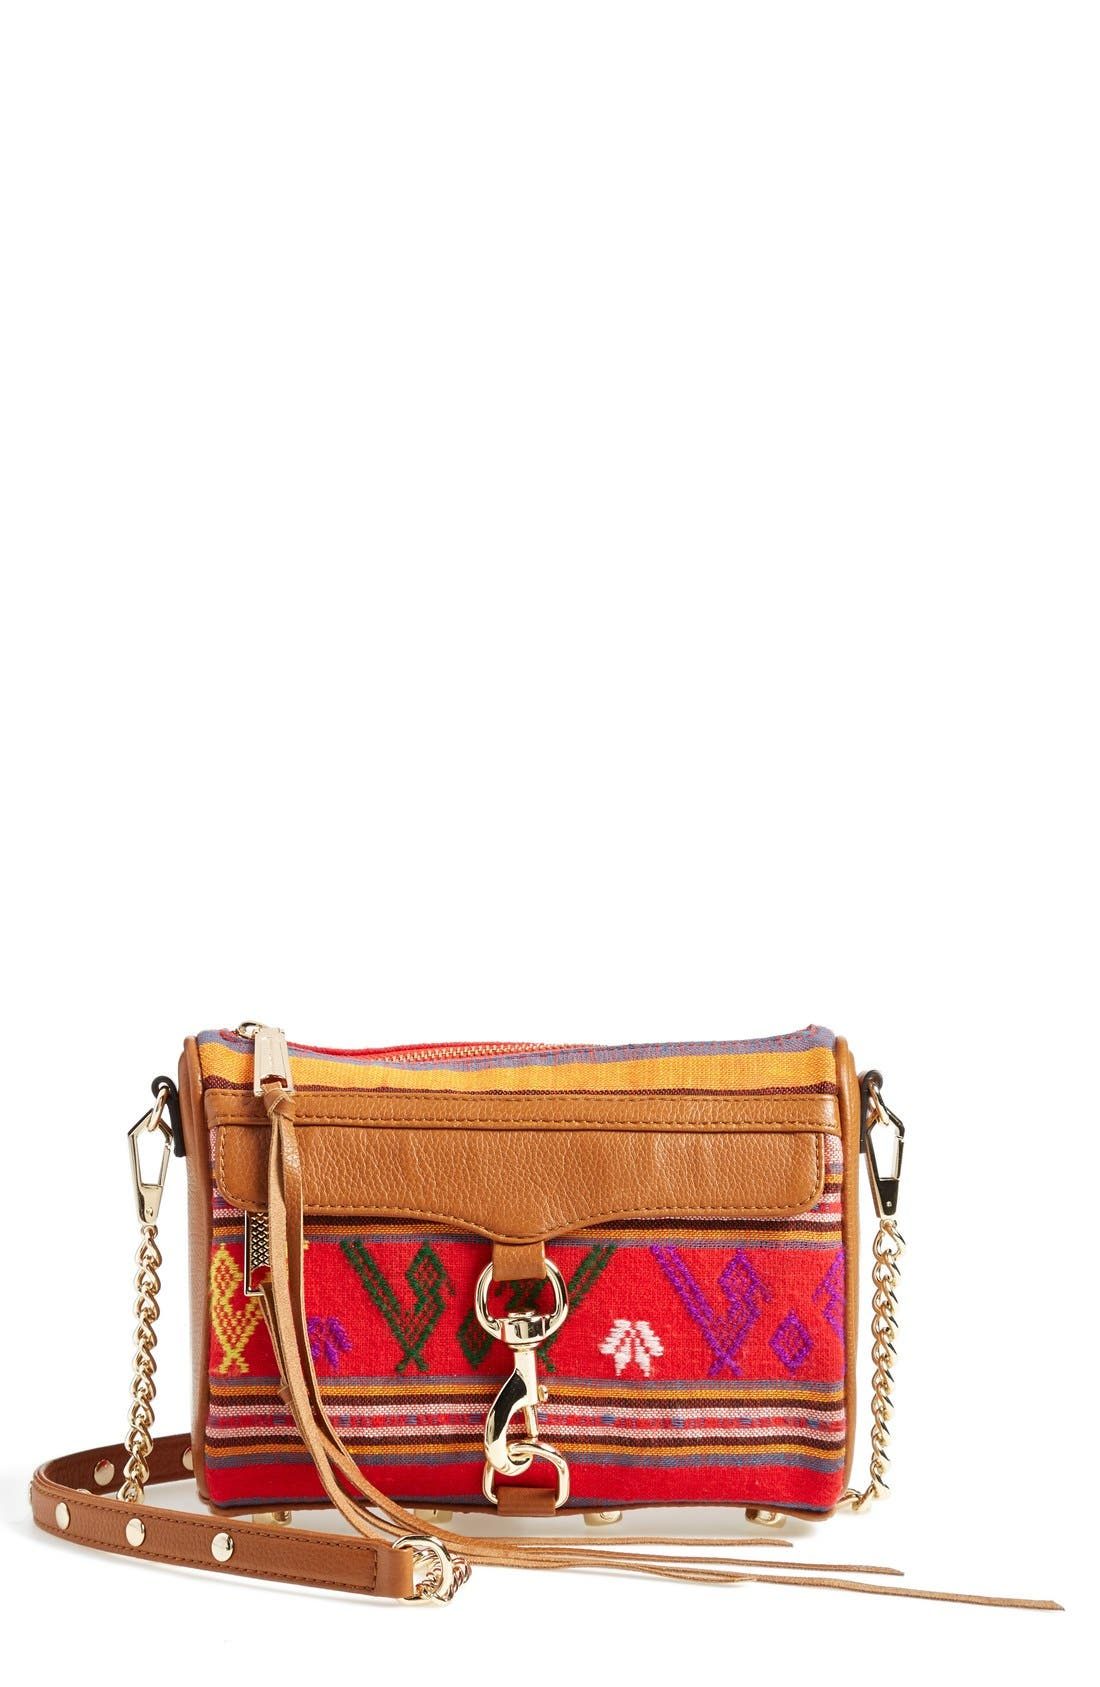 Alternate Image 1 Selected - Piece & Co. and Rebecca Minkoff 'Mini MAC' Convertible Crossbody Bag